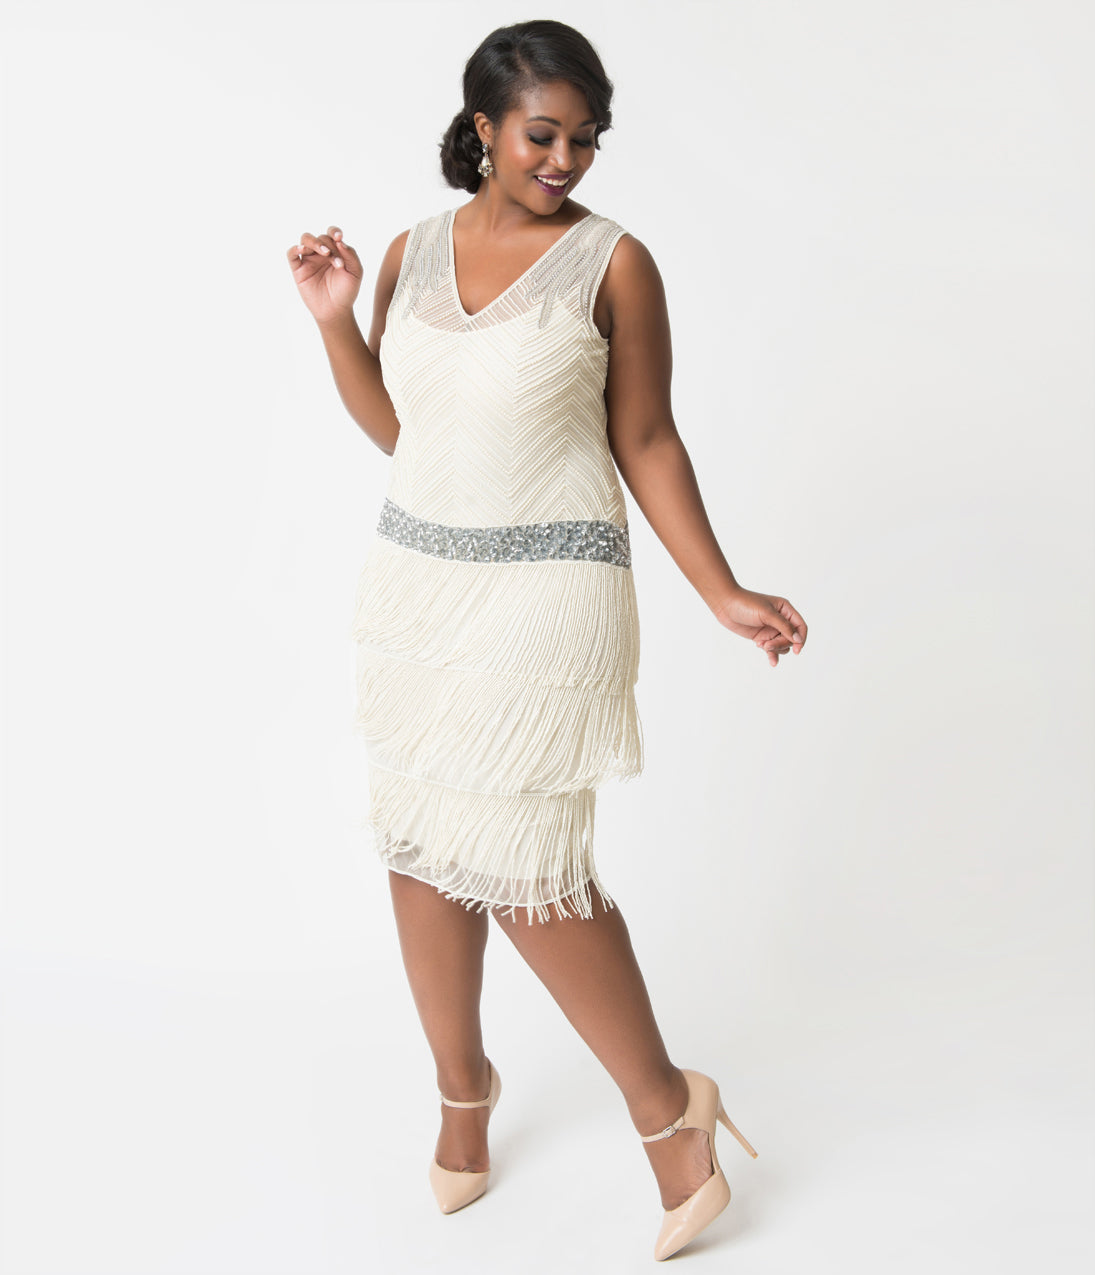 Vintage Inspired Wedding Dress | Vintage Style Wedding Dresses Unique Vintage Plus Size 1920S Ivory Beaded Fringe Rosedale Cocktail Dress $268.00 AT vintagedancer.com